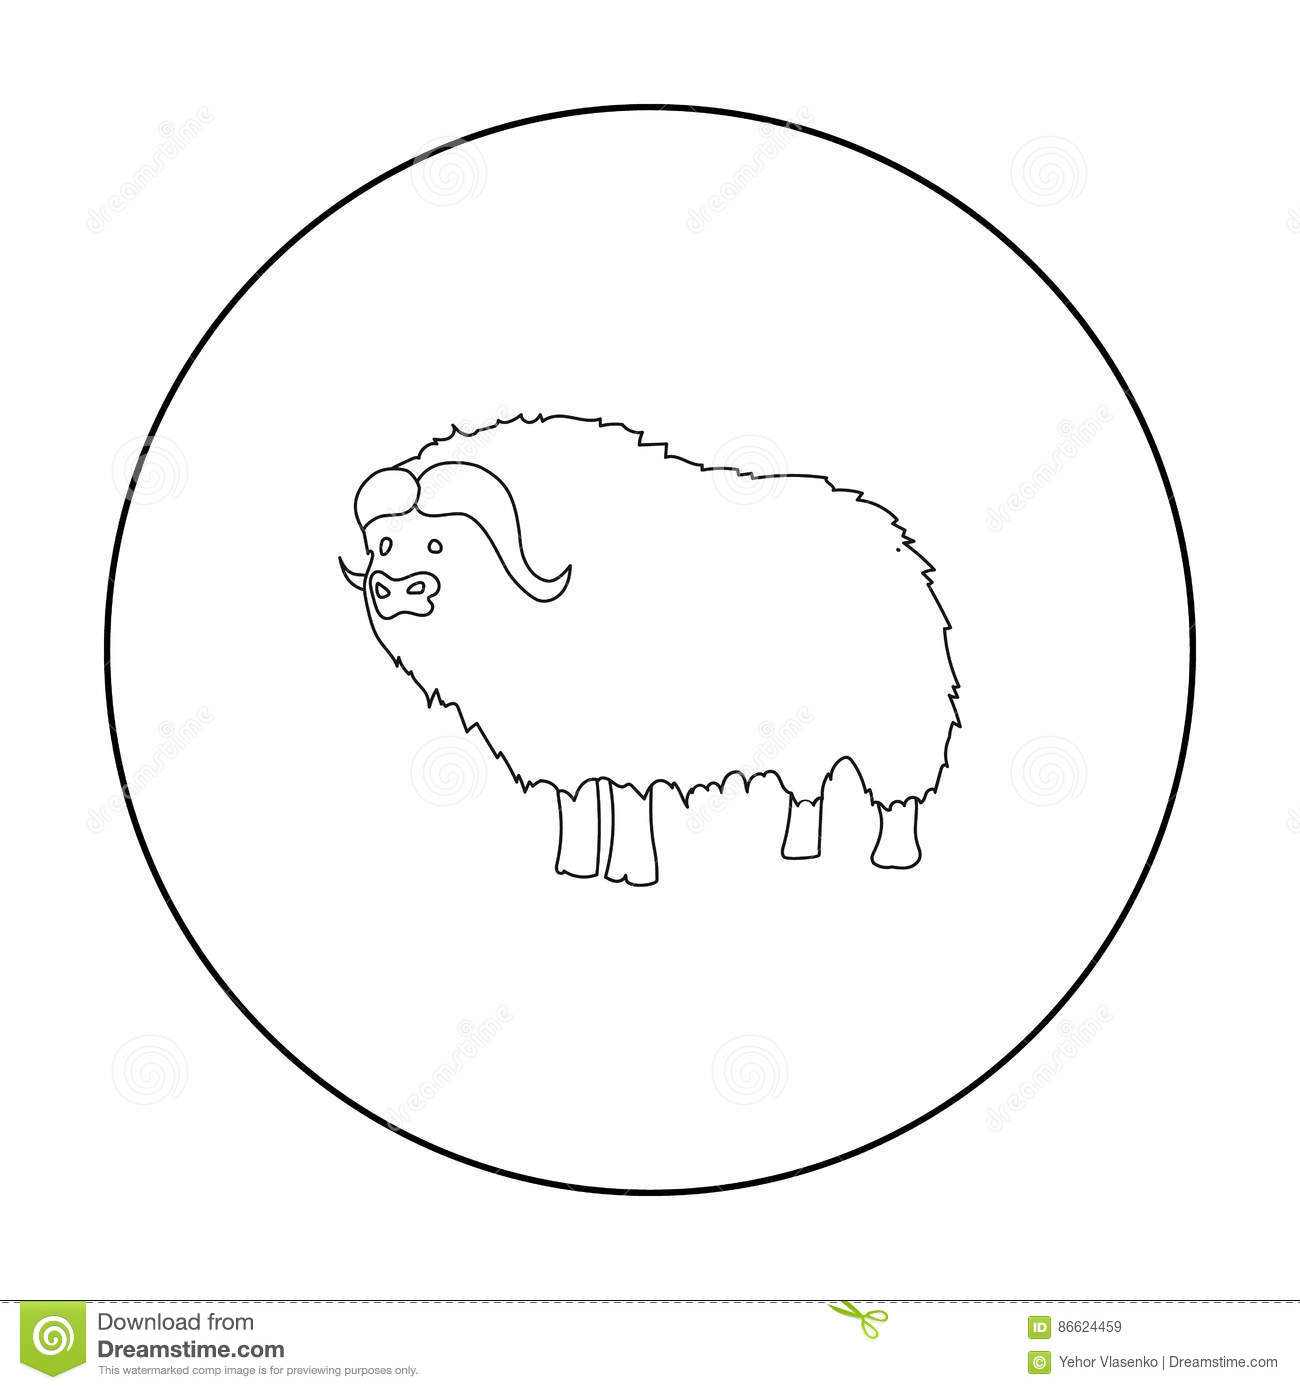 Muskox of stone age icon in outline style isolated on for Decor outline